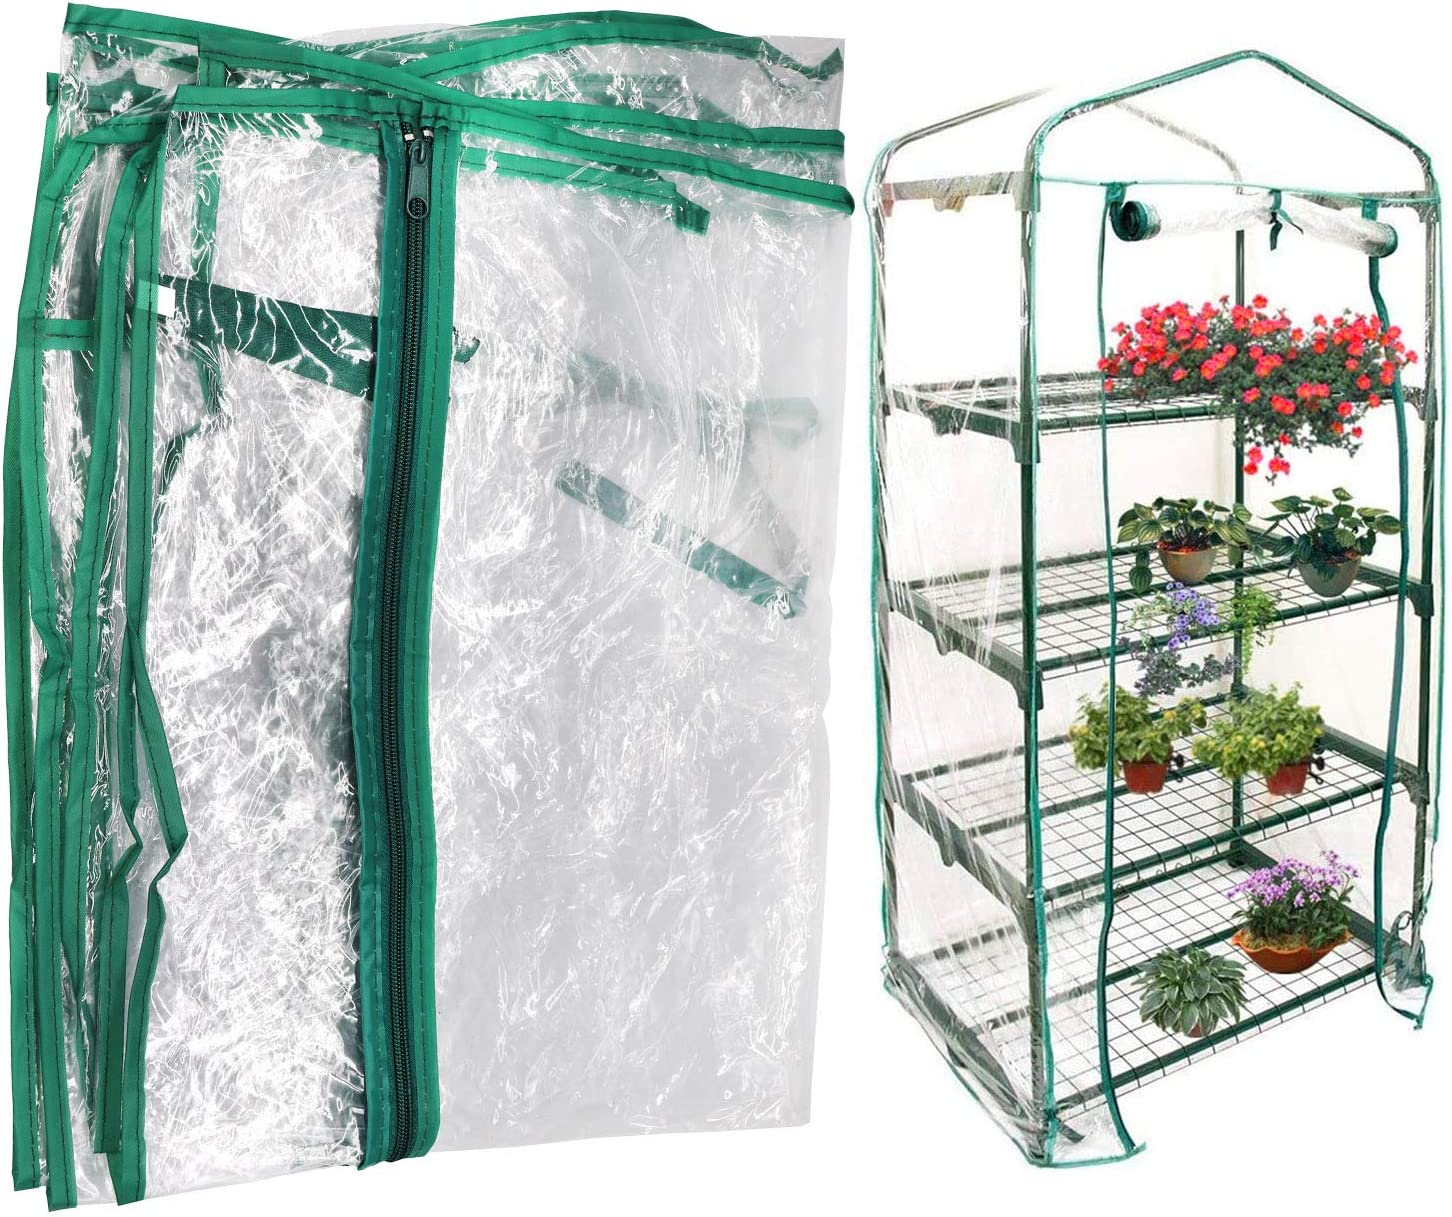 Together-life Mini Greenhouse Transparent PVC Cover Portable Small Greenhouses Cover wih Roll-Up Zipper Door, Waterproof Garden Green House Tent(Iron Stand not Include)